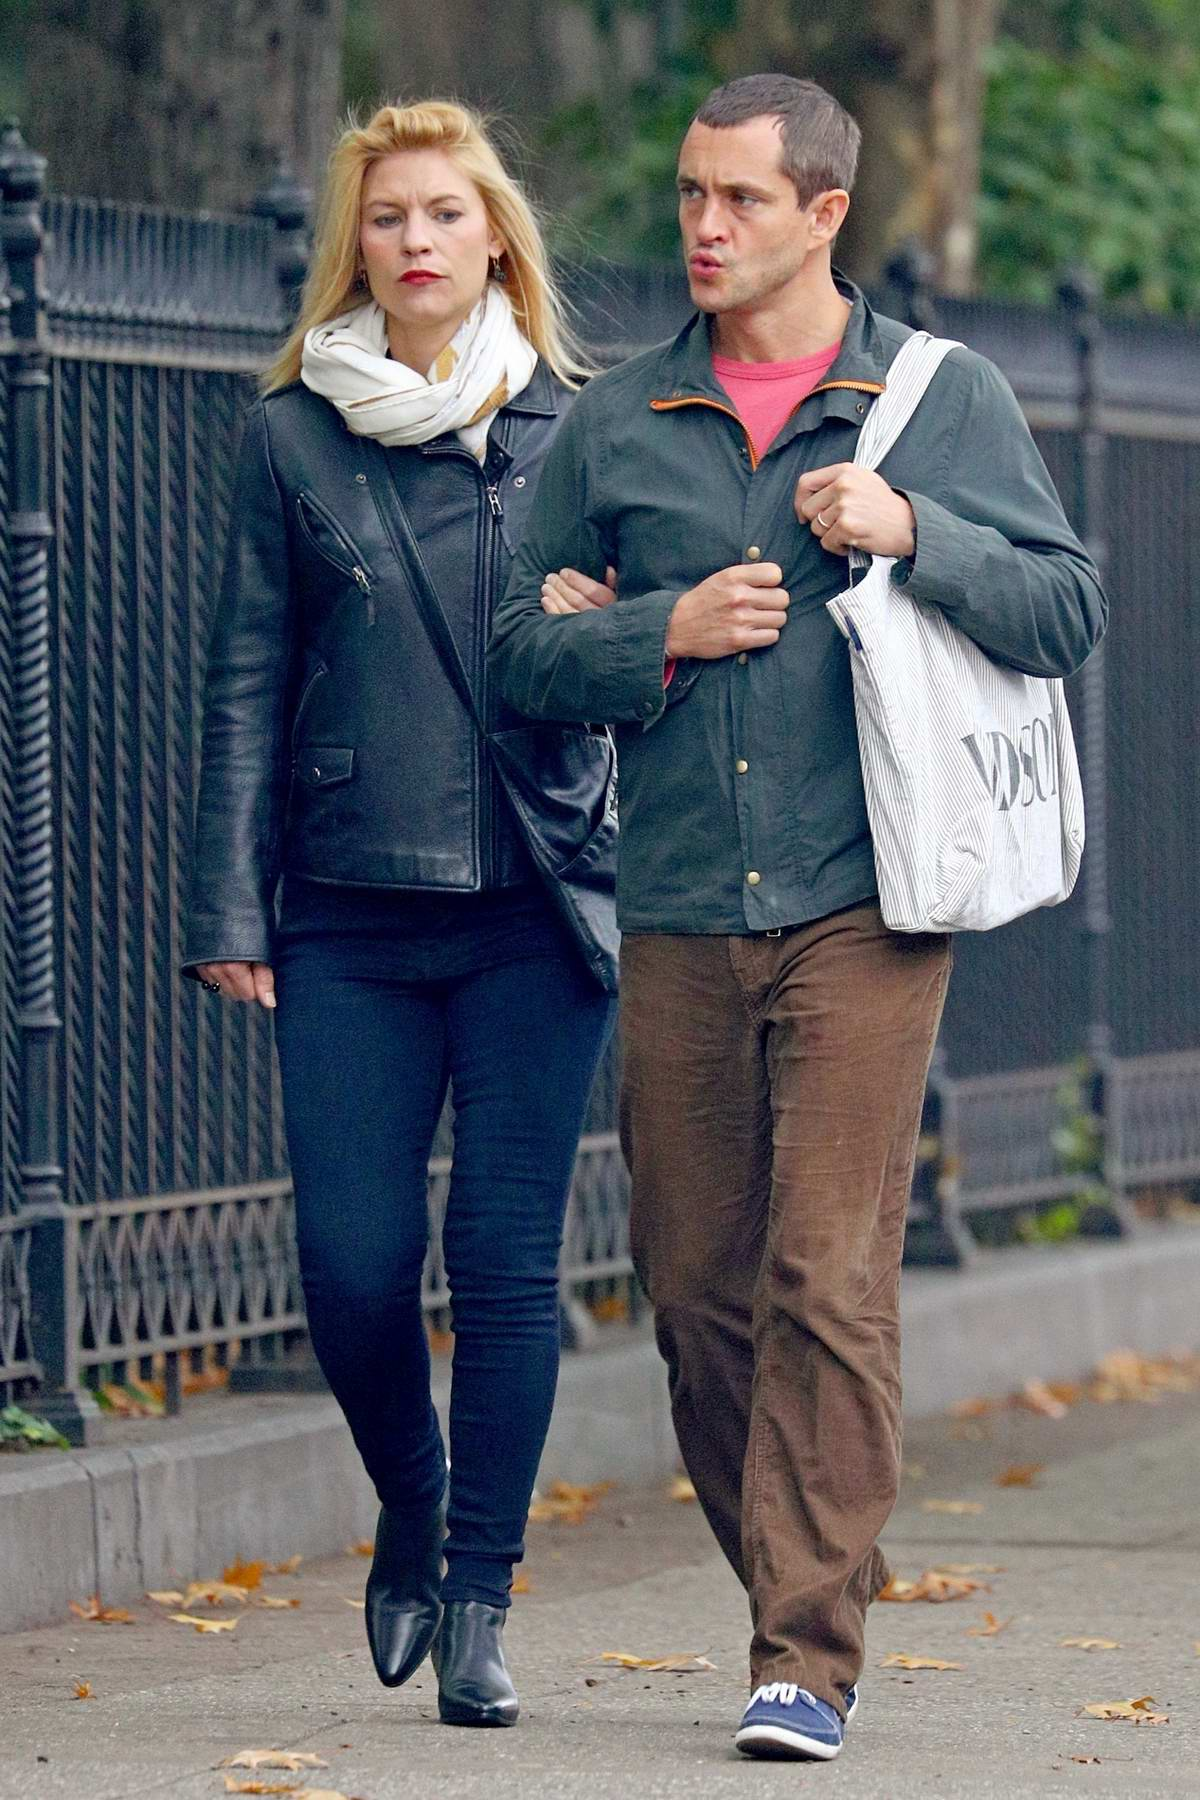 Claire Danes and Hugh Dancy stroll around after grabbing lunch in New York City